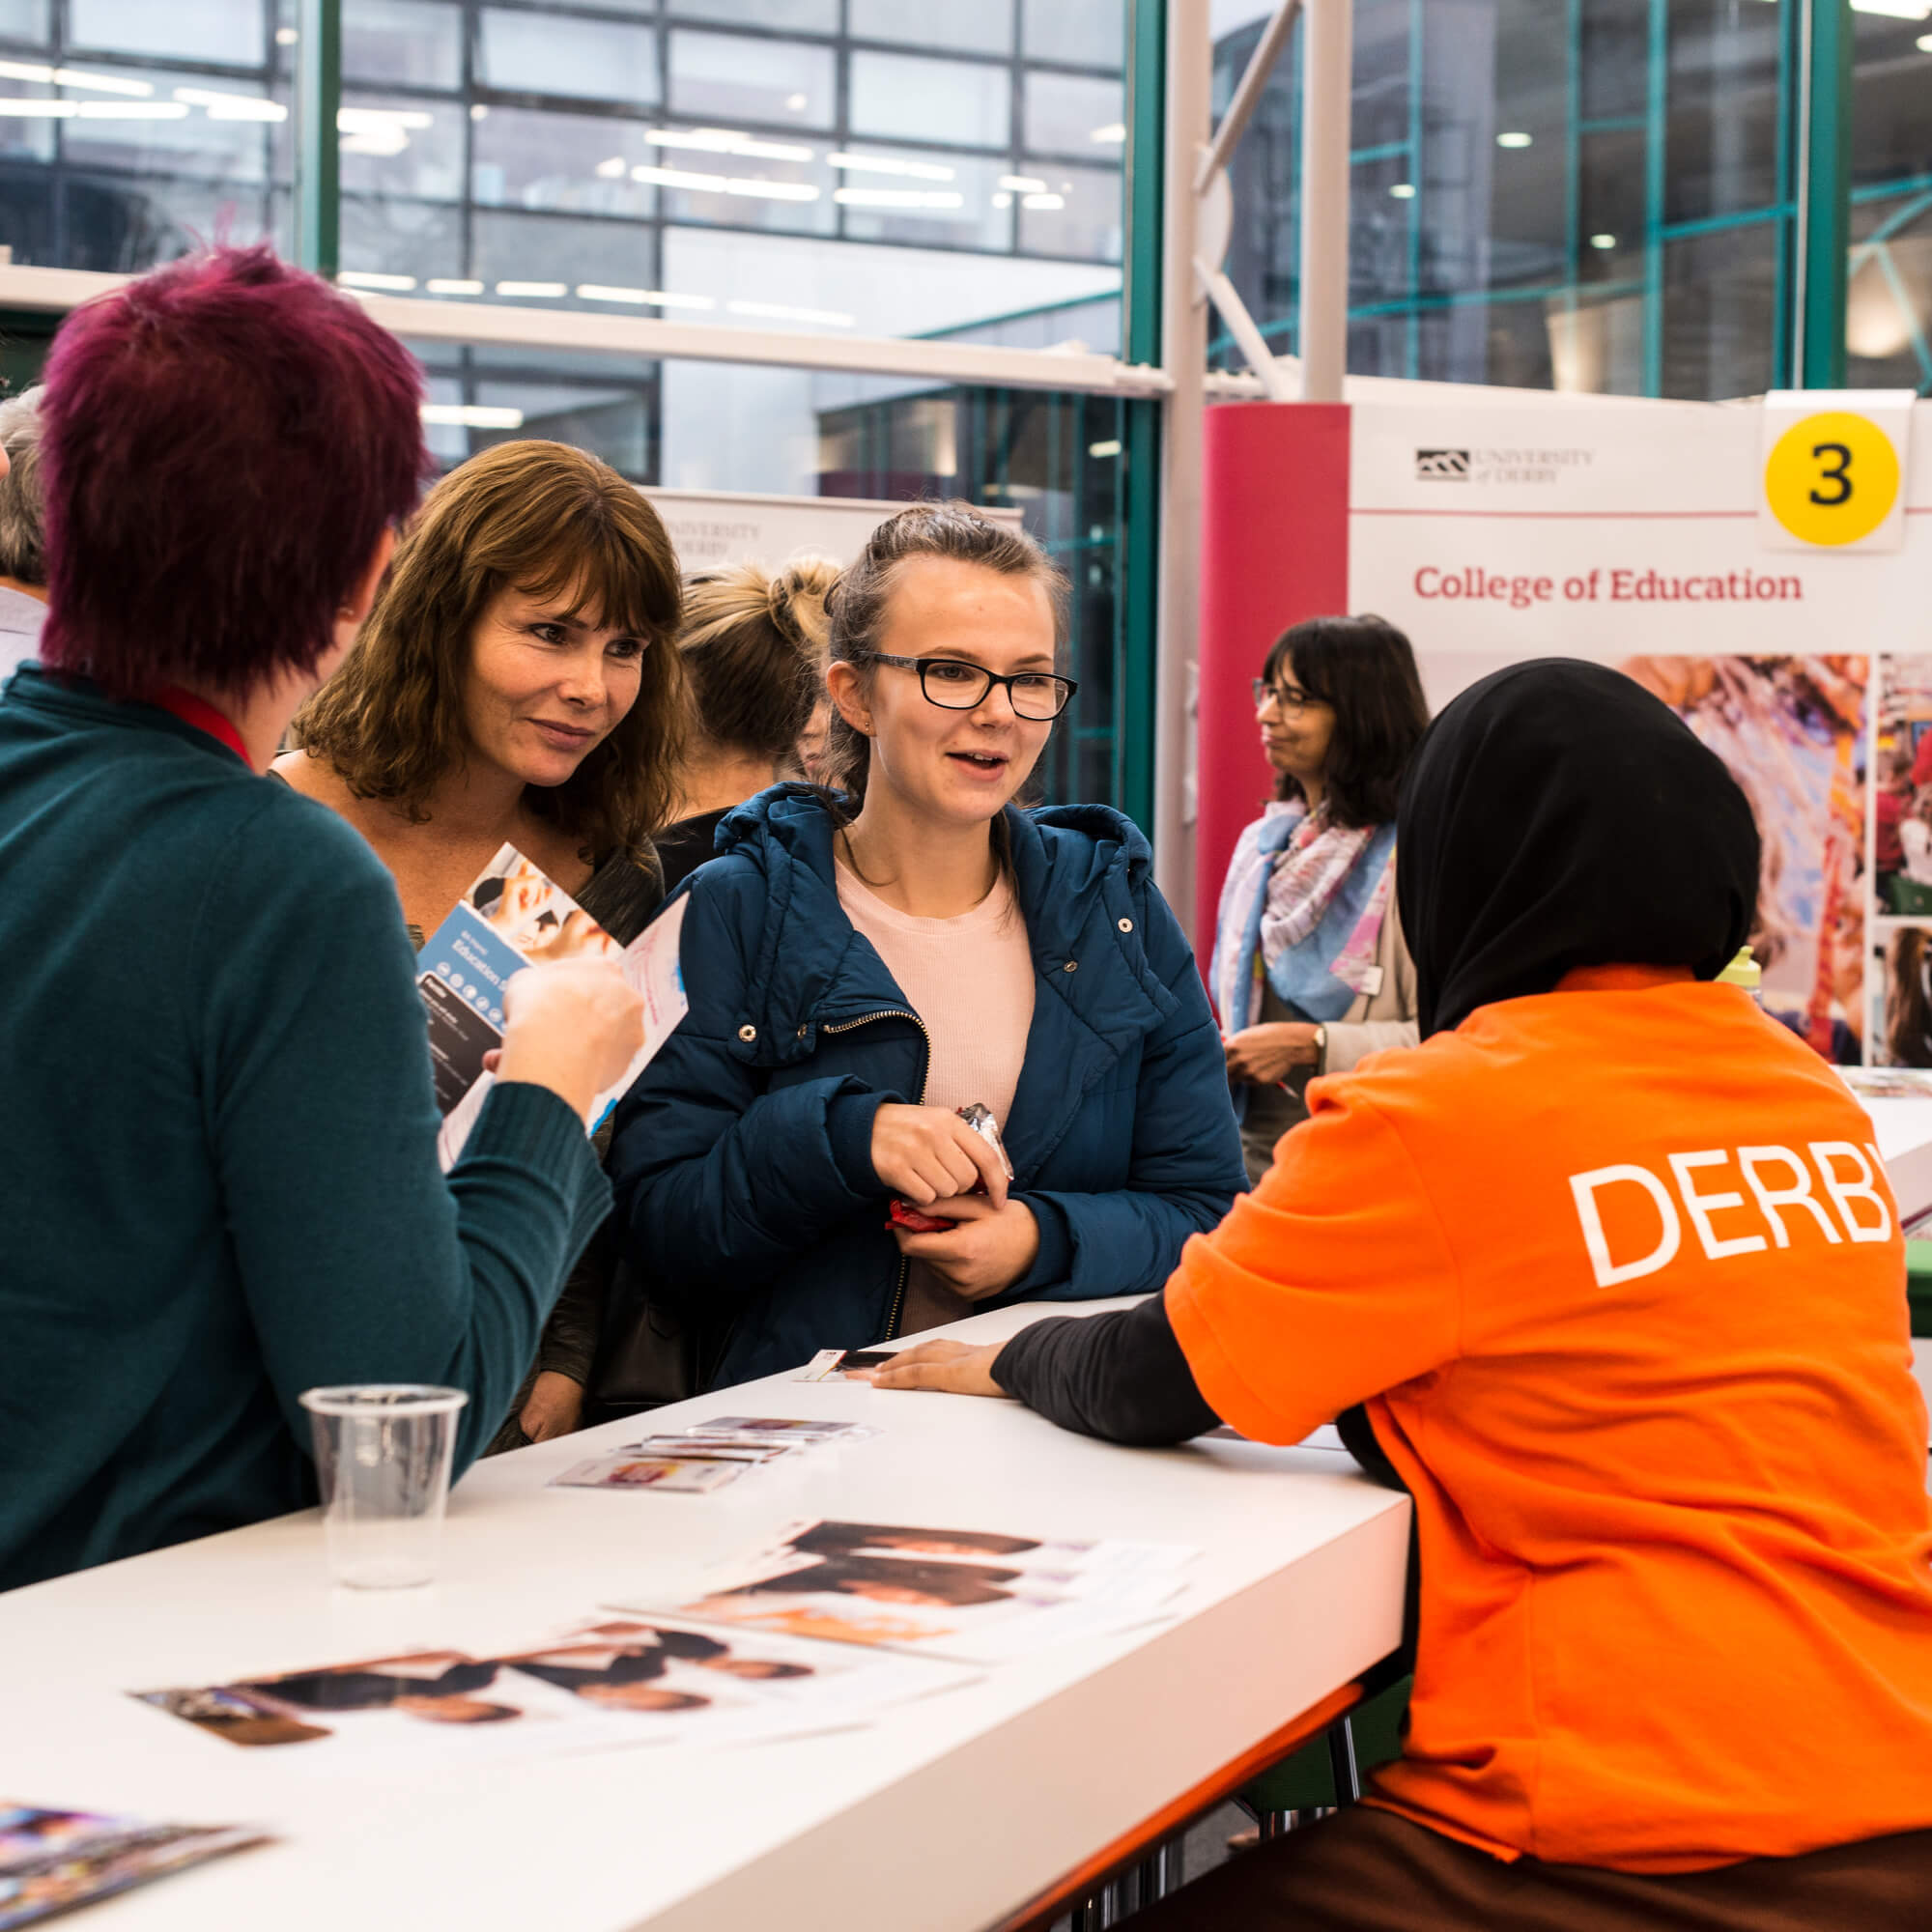 Ambassador assisting students on an Open Day at a College stand